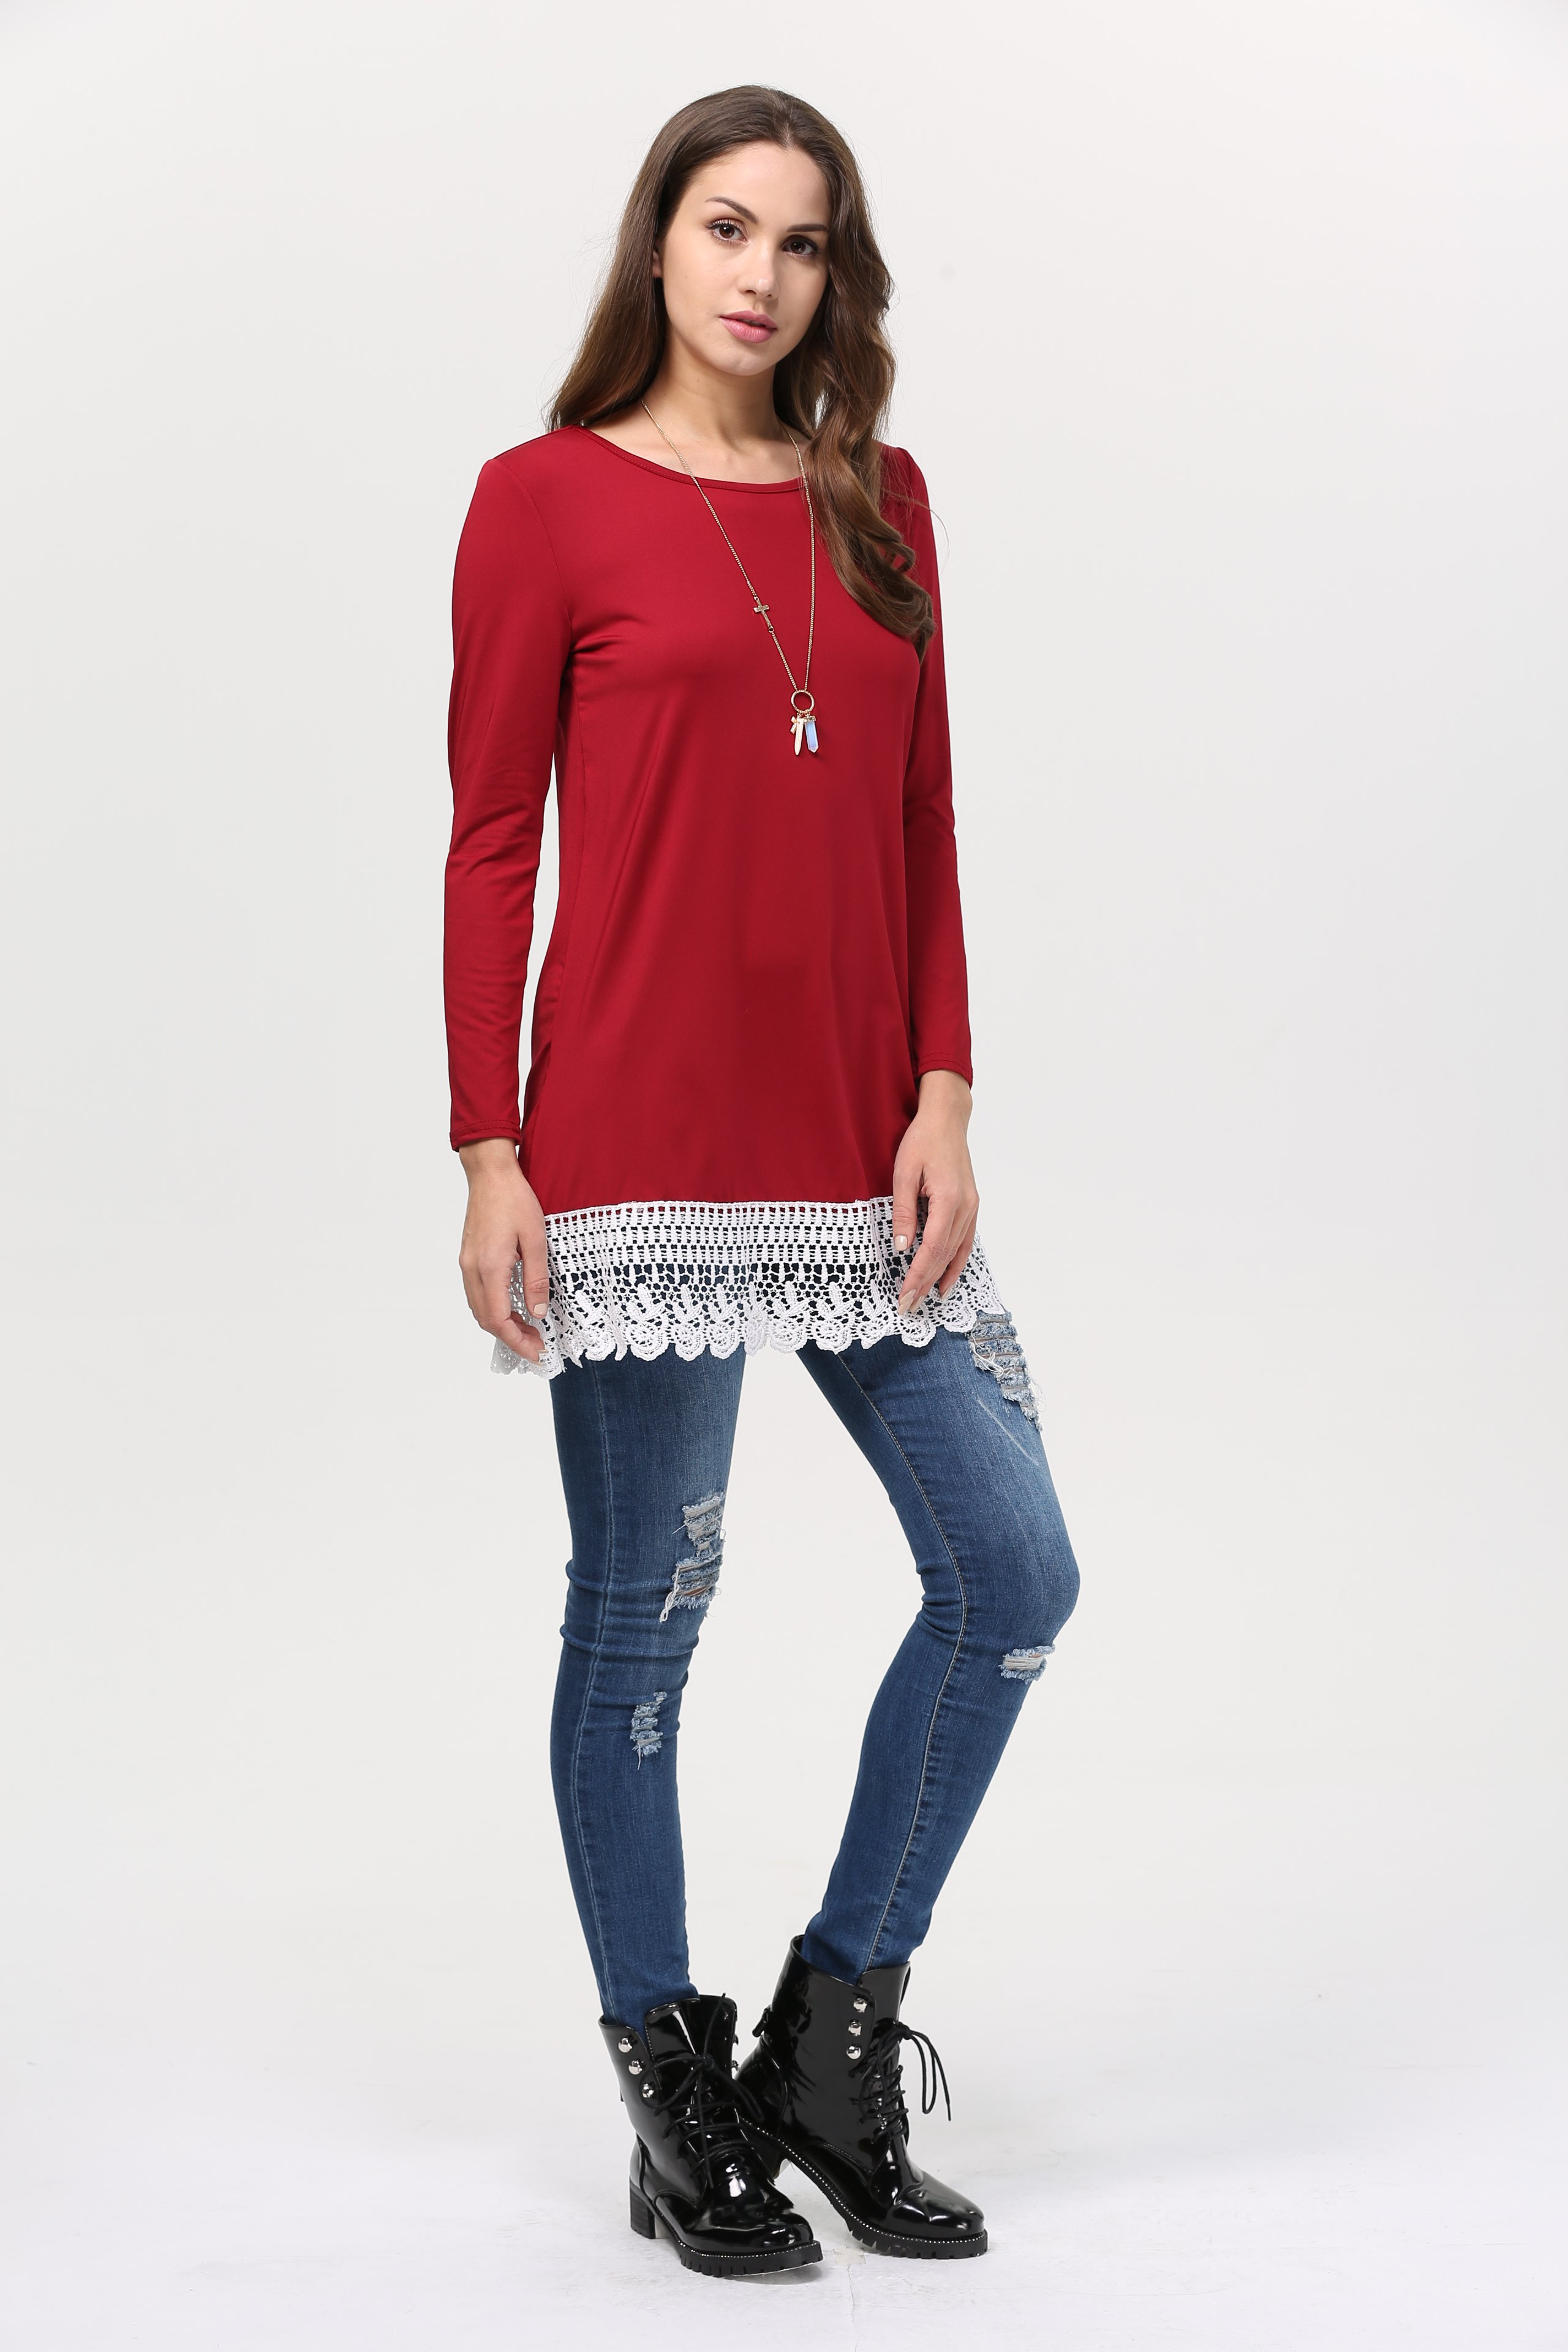 Lace Trim Tunic Top - WINE RED M